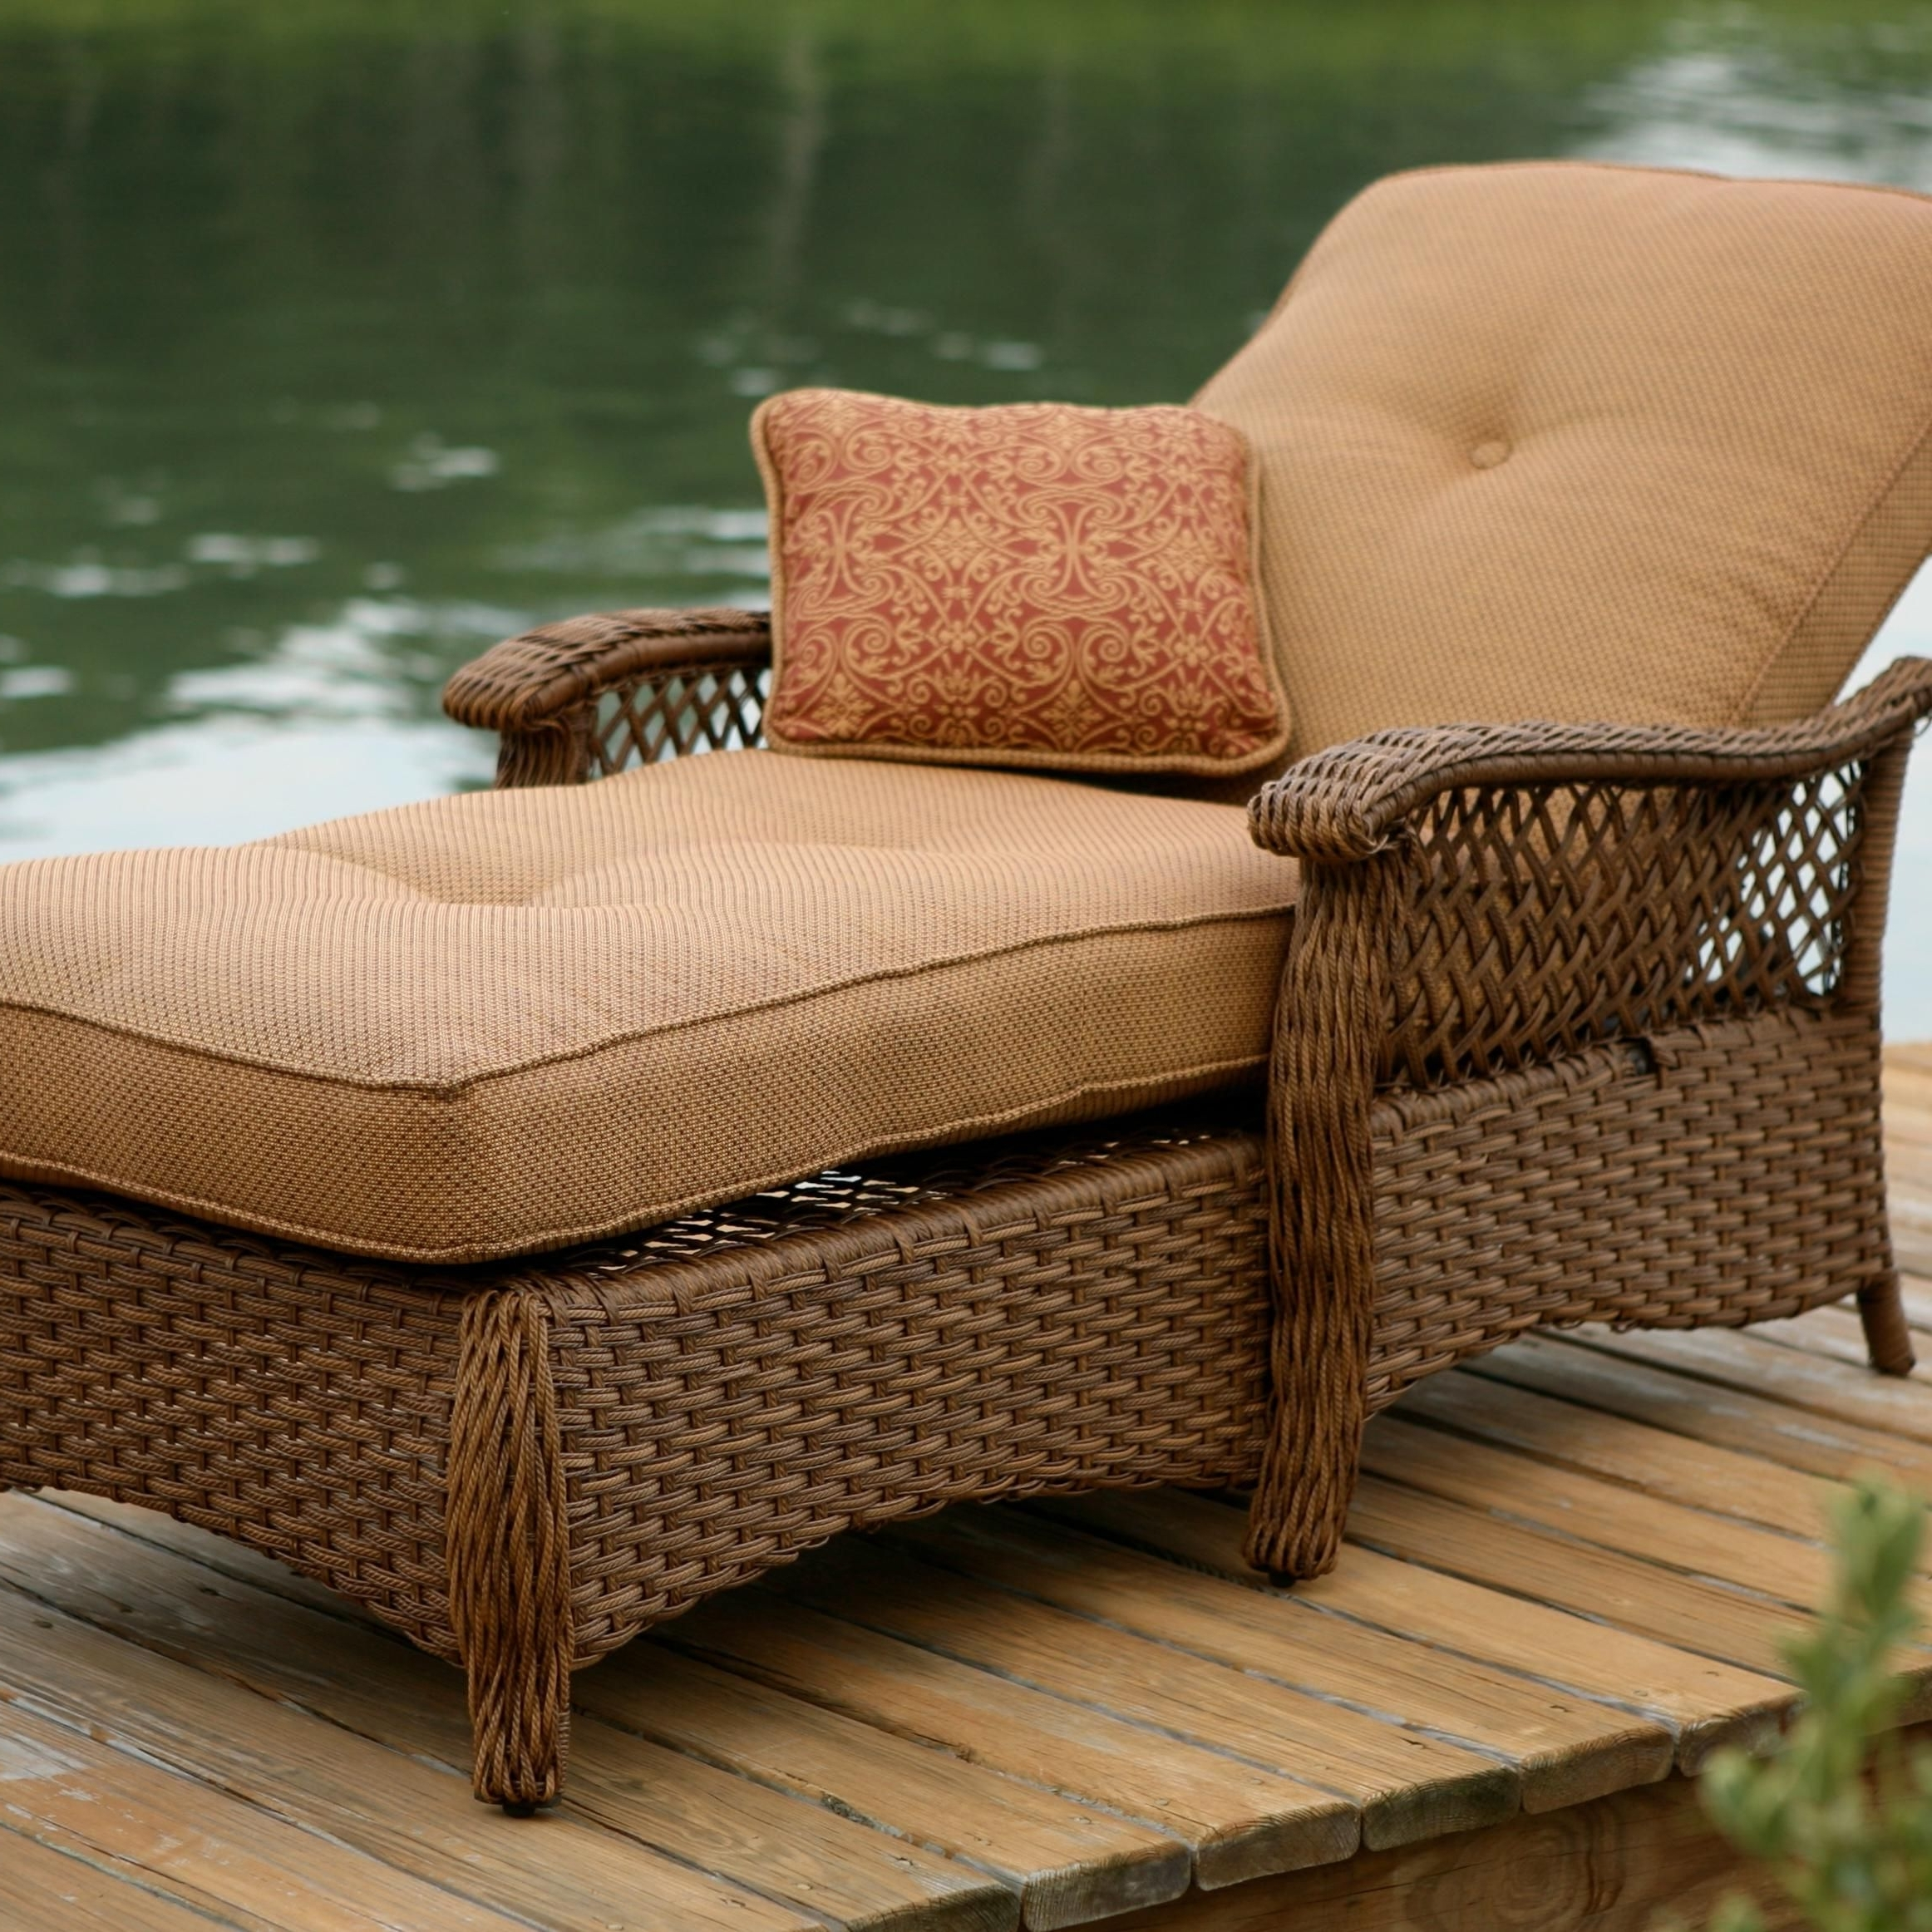 Best And Newest Outdoor Pool Furniture Chaise Lounges Regarding Veranda–Agio Outdoor Woven Chaise Loungeagio (View 11 of 15)